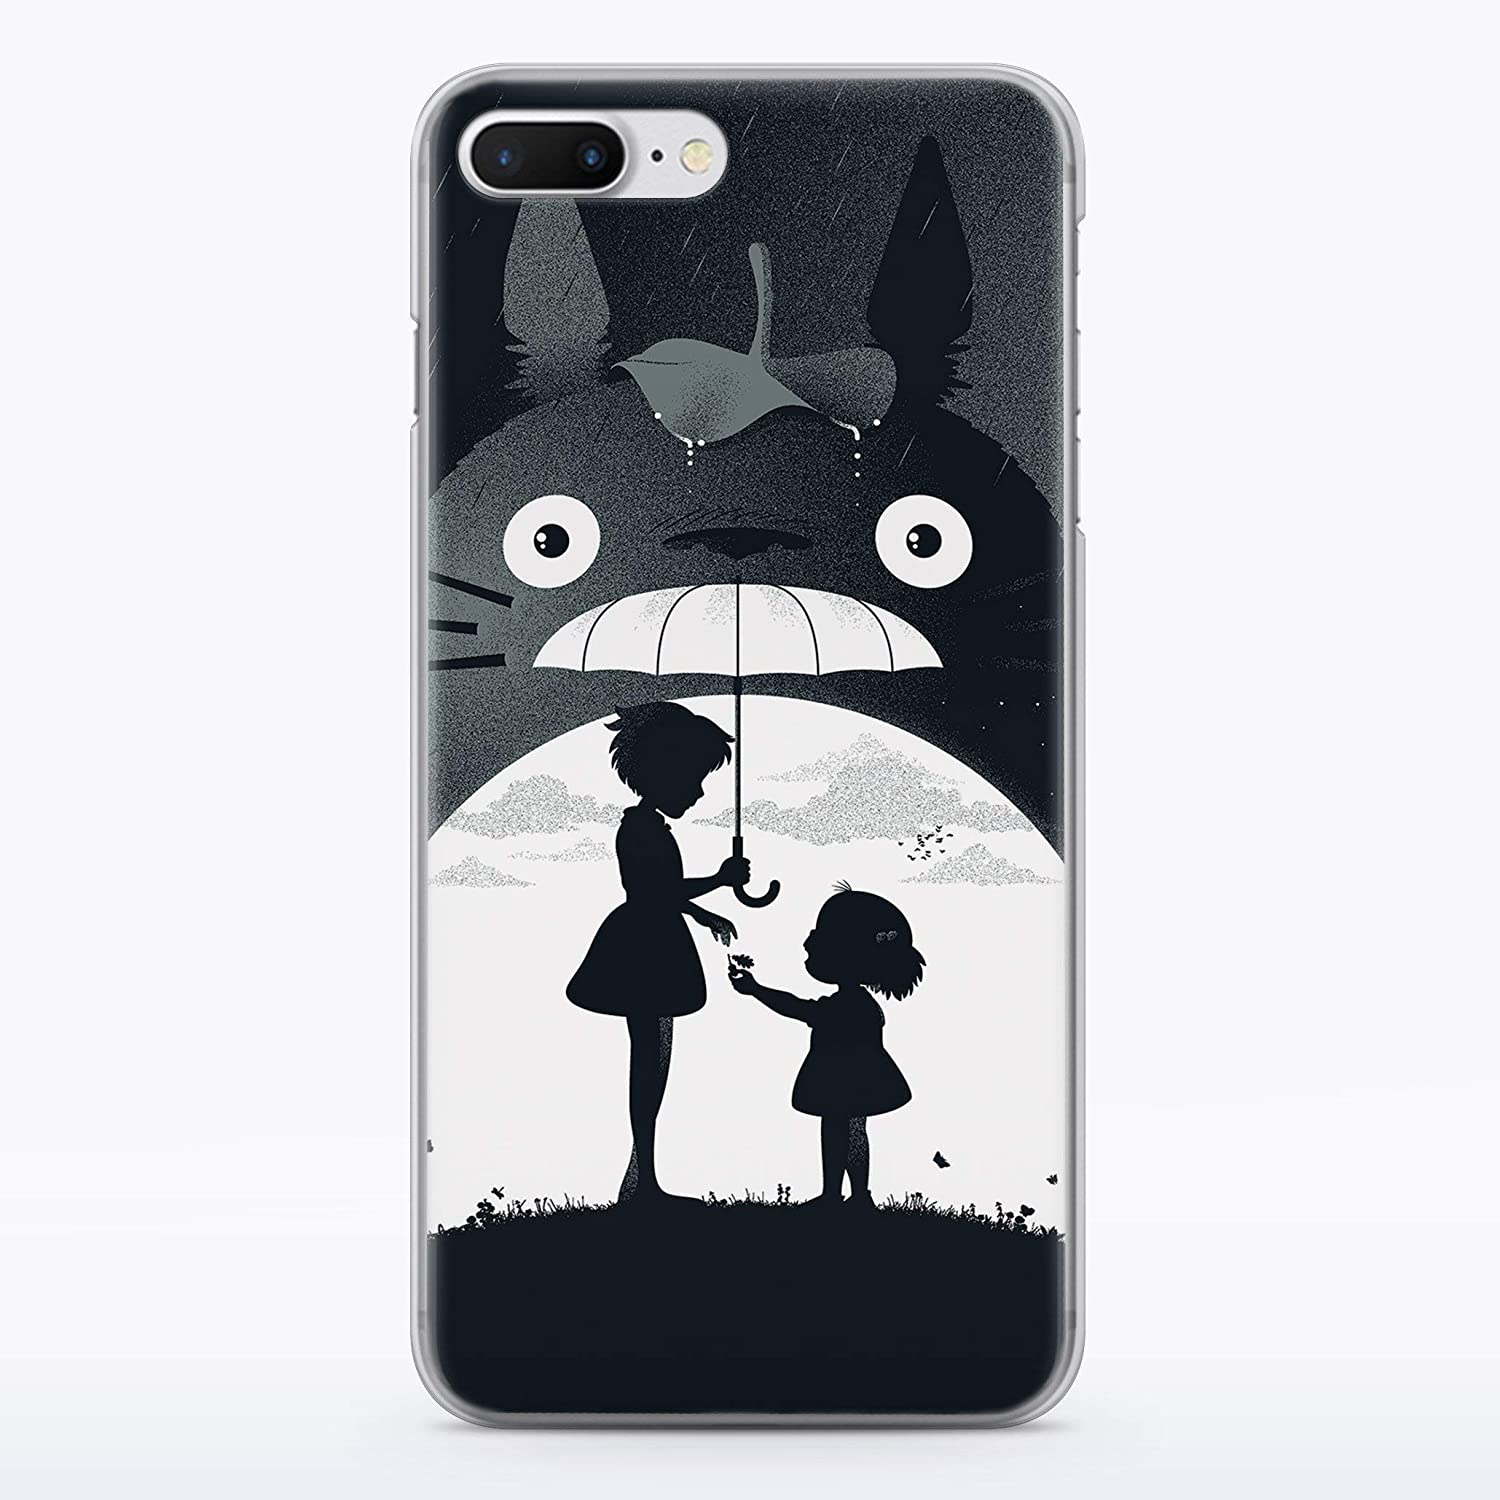 timeless design 6a256 351e4 Totoro iPhone Case My Neighbor Totoro iPhone 7 8 6 6s plus X XS Max XR 5 5s  se 5se 4 4s case 4 4S 10 6plus 8s 8plus 7plus 6splus 7plus 7s Plus cases ...